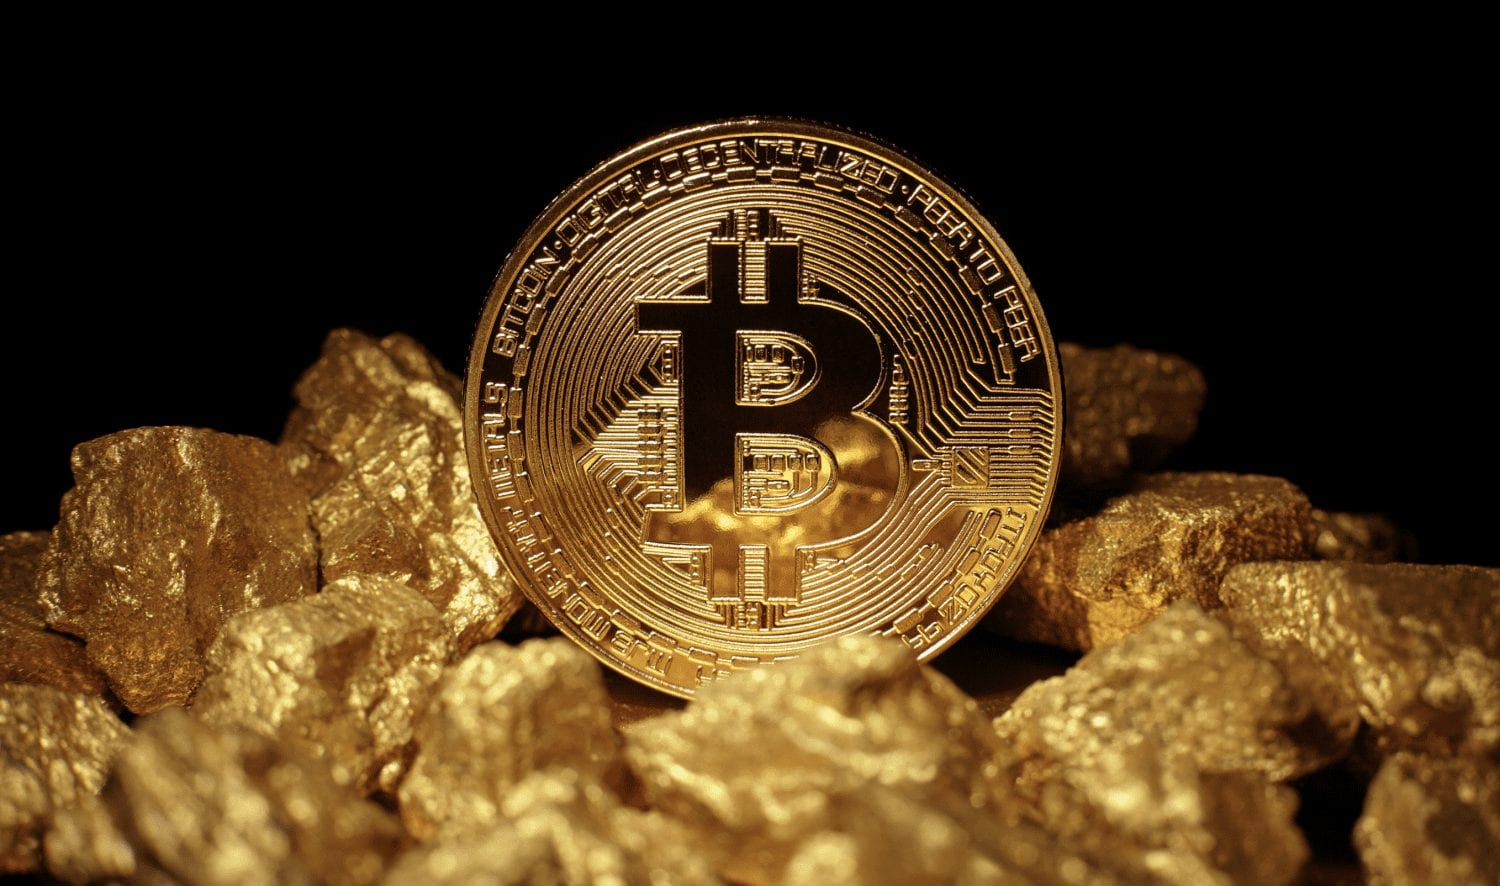 Screen Shot 2017 10 23 at 5.59.30 PM e1508796050361 1 - Gemini Owner Tyler Winklevoss Predicts That Bitcoin Will Exceed Gold's $7 Trillion Market Cap - BTC Would Reach About $333,333